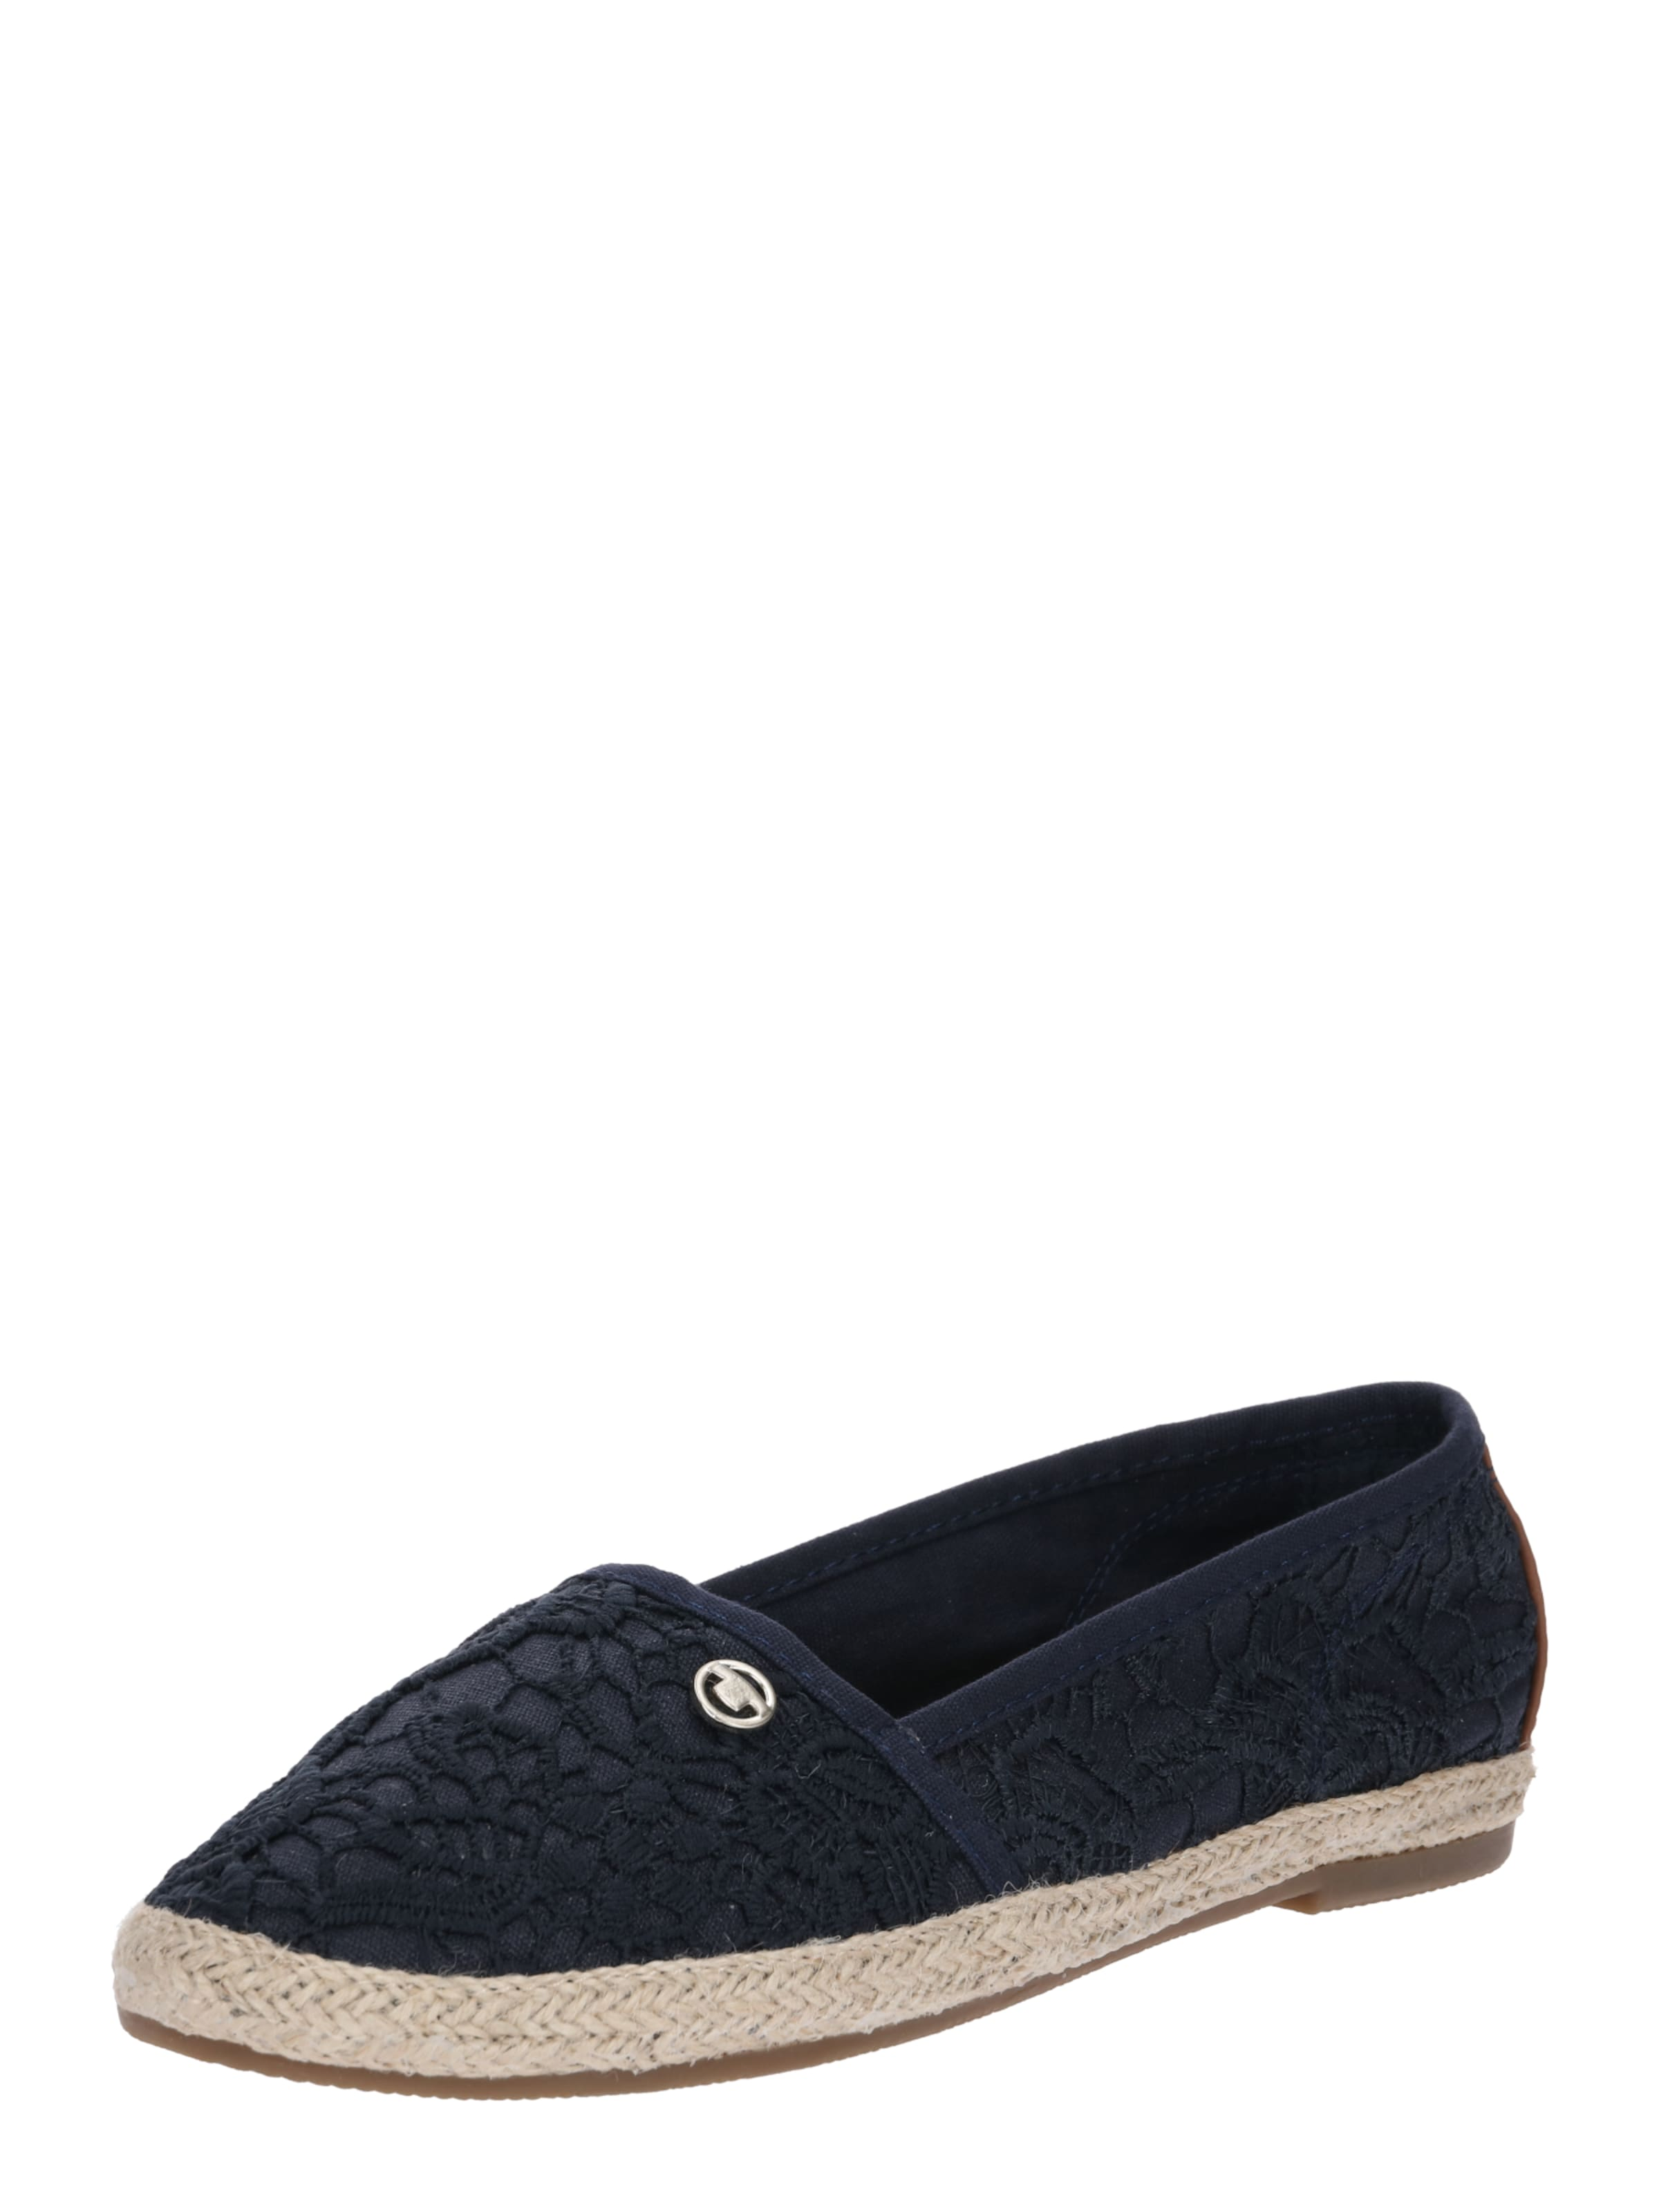 Navy Espadrilles In Tom Tom Navy Tom In Tailor Tailor Espadrilles 0X8wOnPk